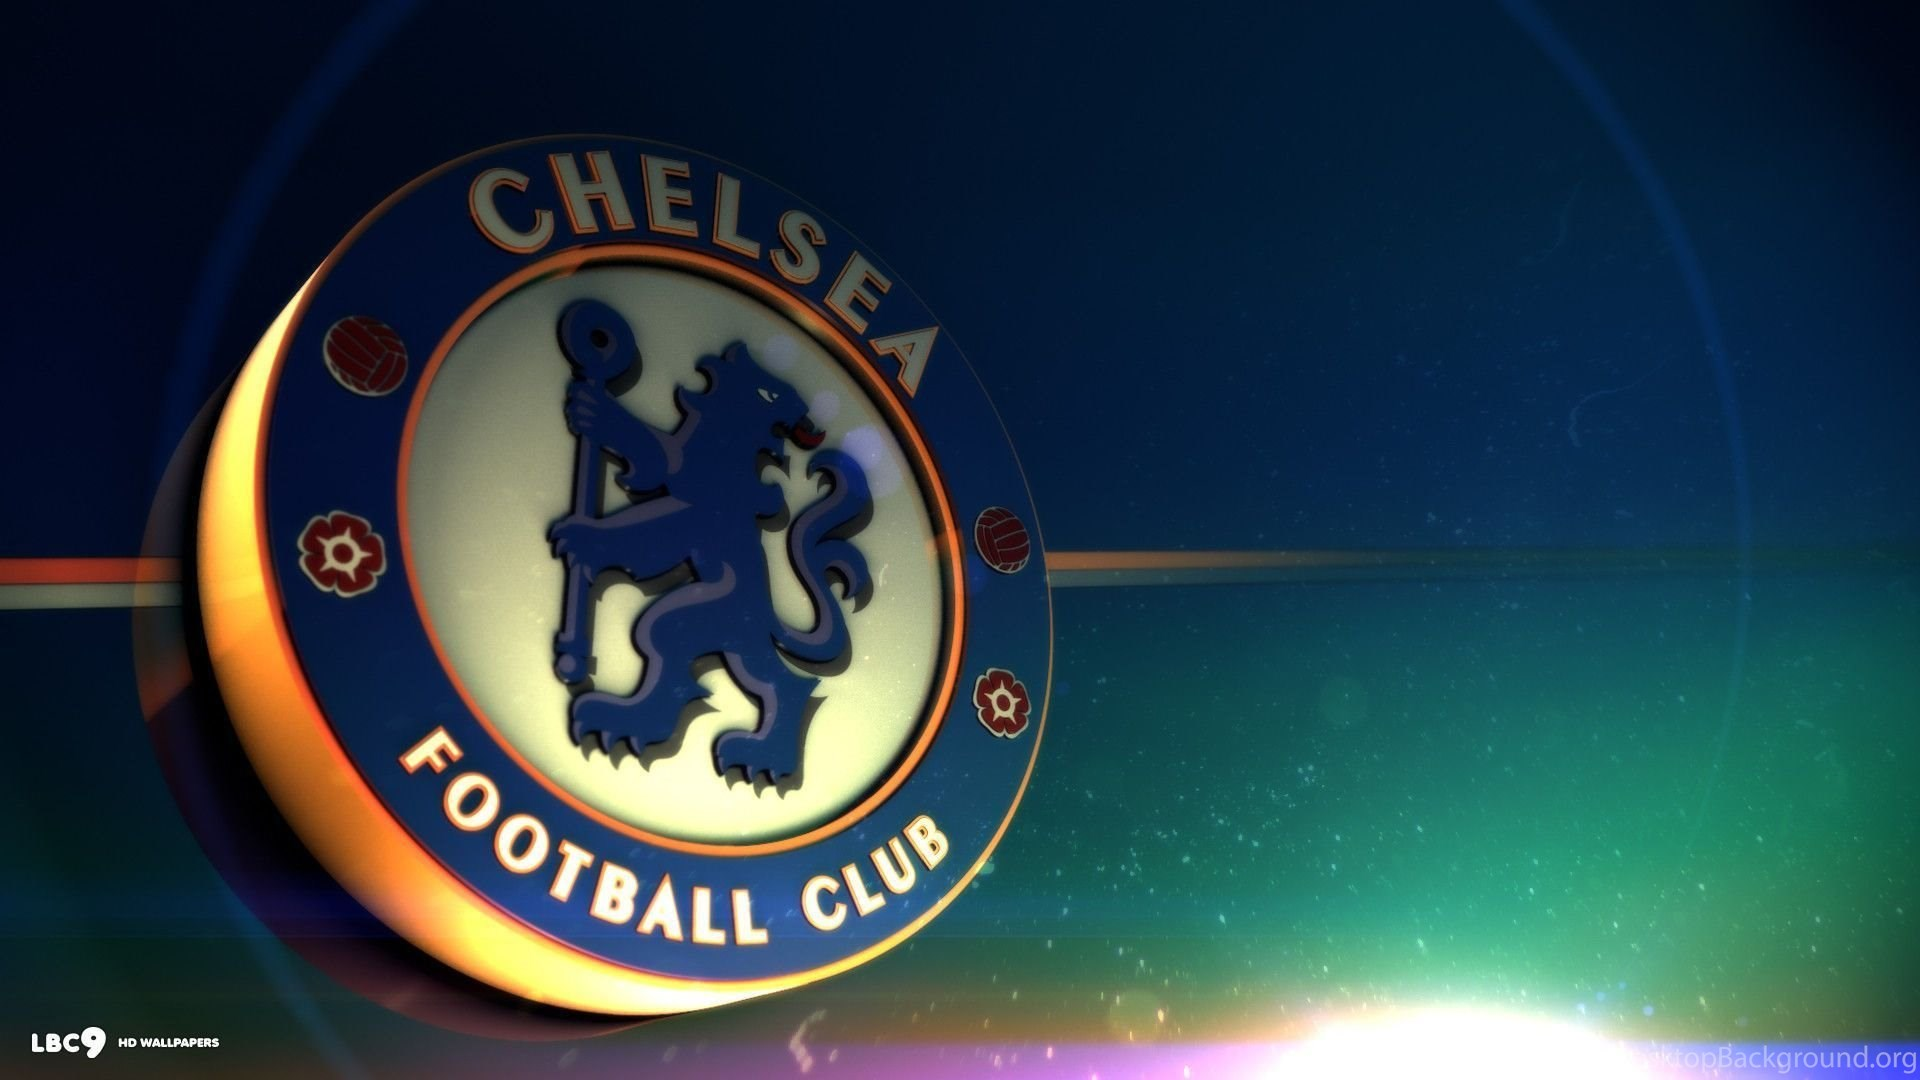 Chelsea fc wallpapers and windows 81 theme desktop background popular voltagebd Gallery